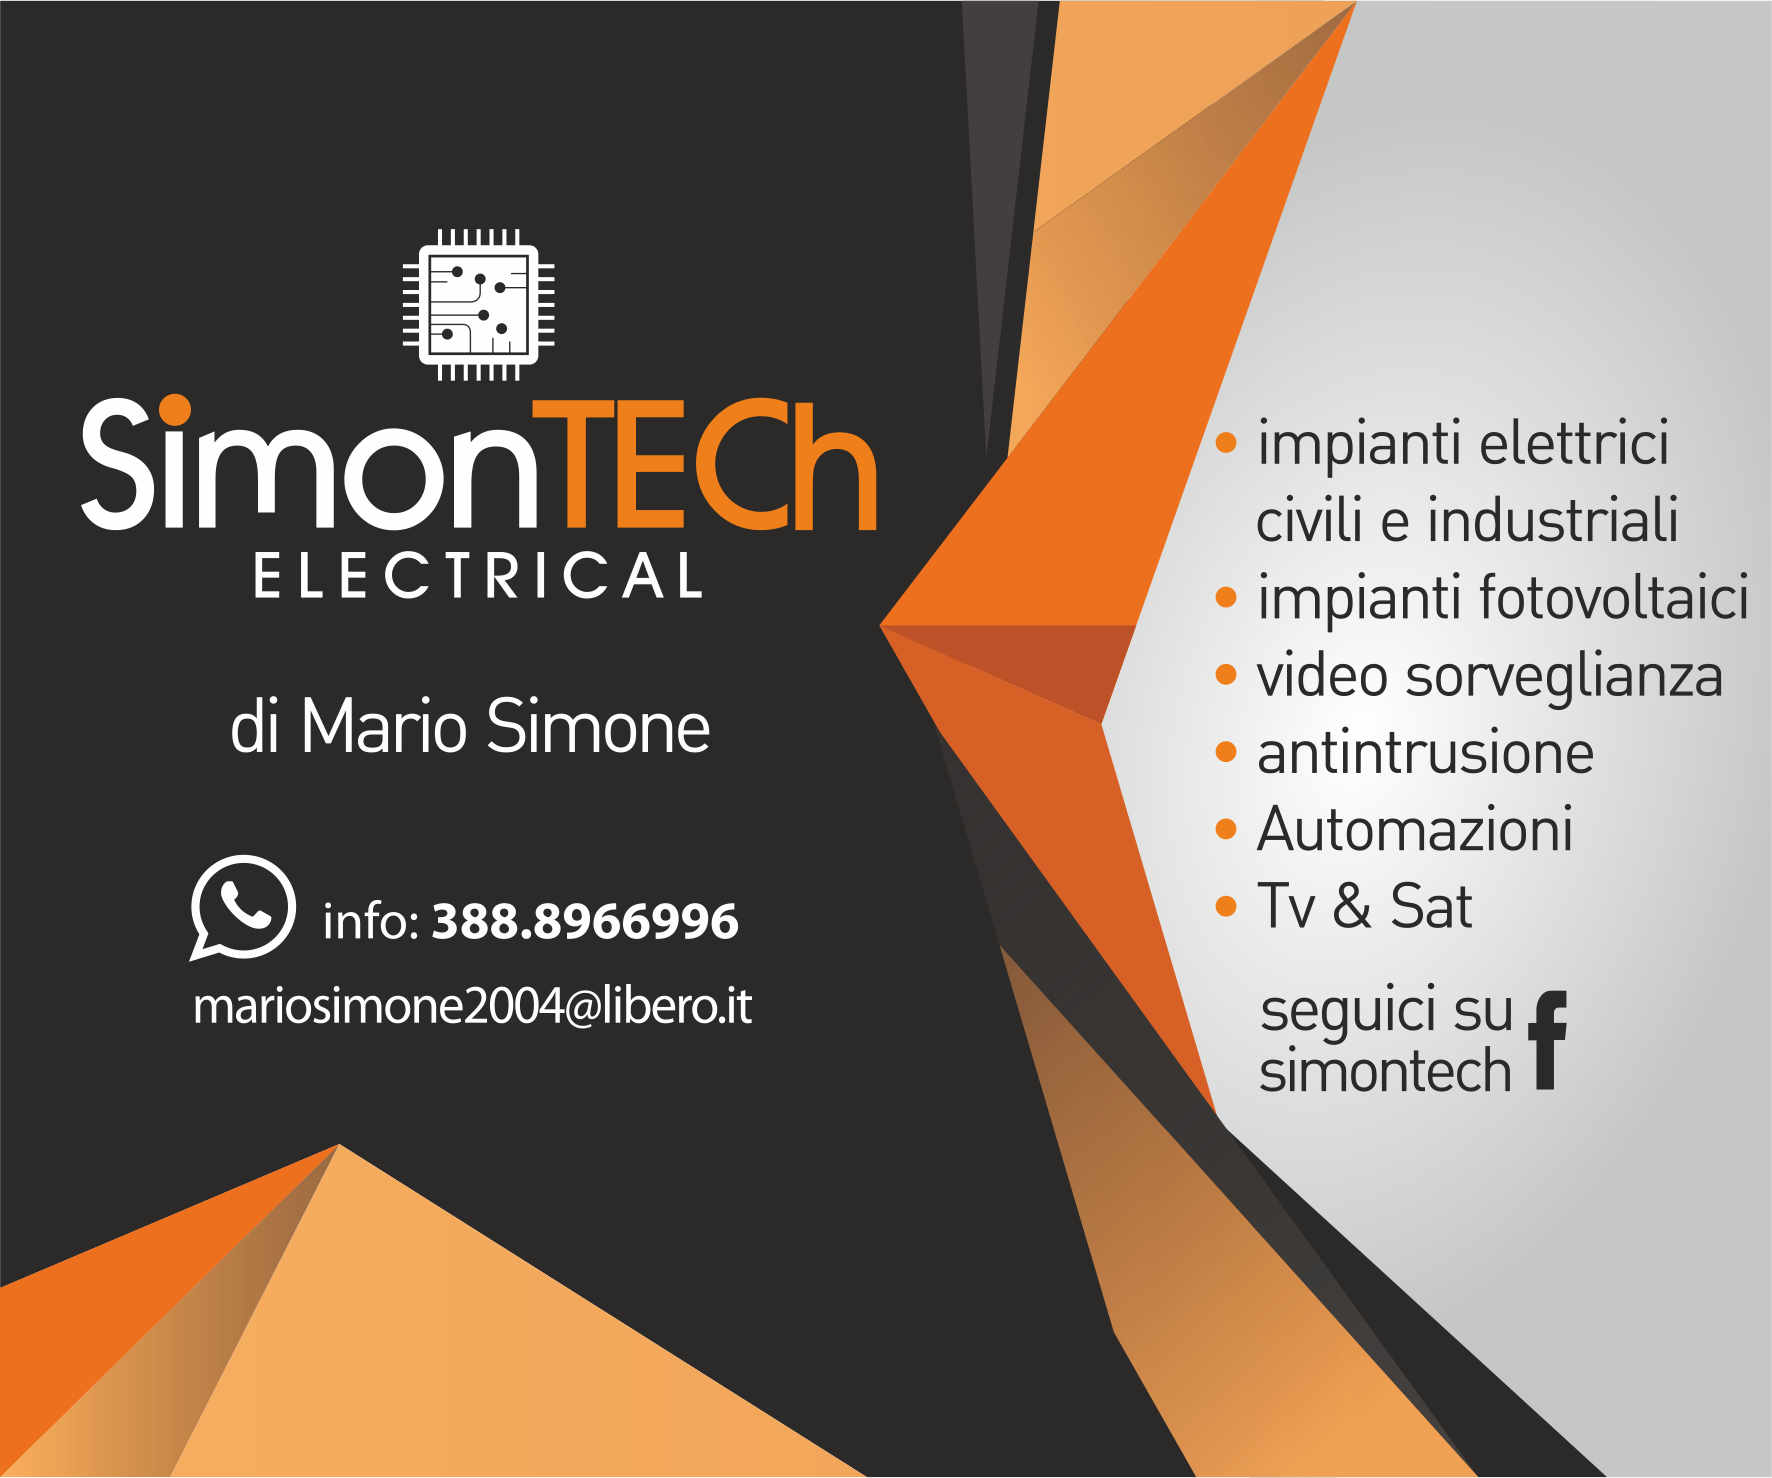 Simon tech